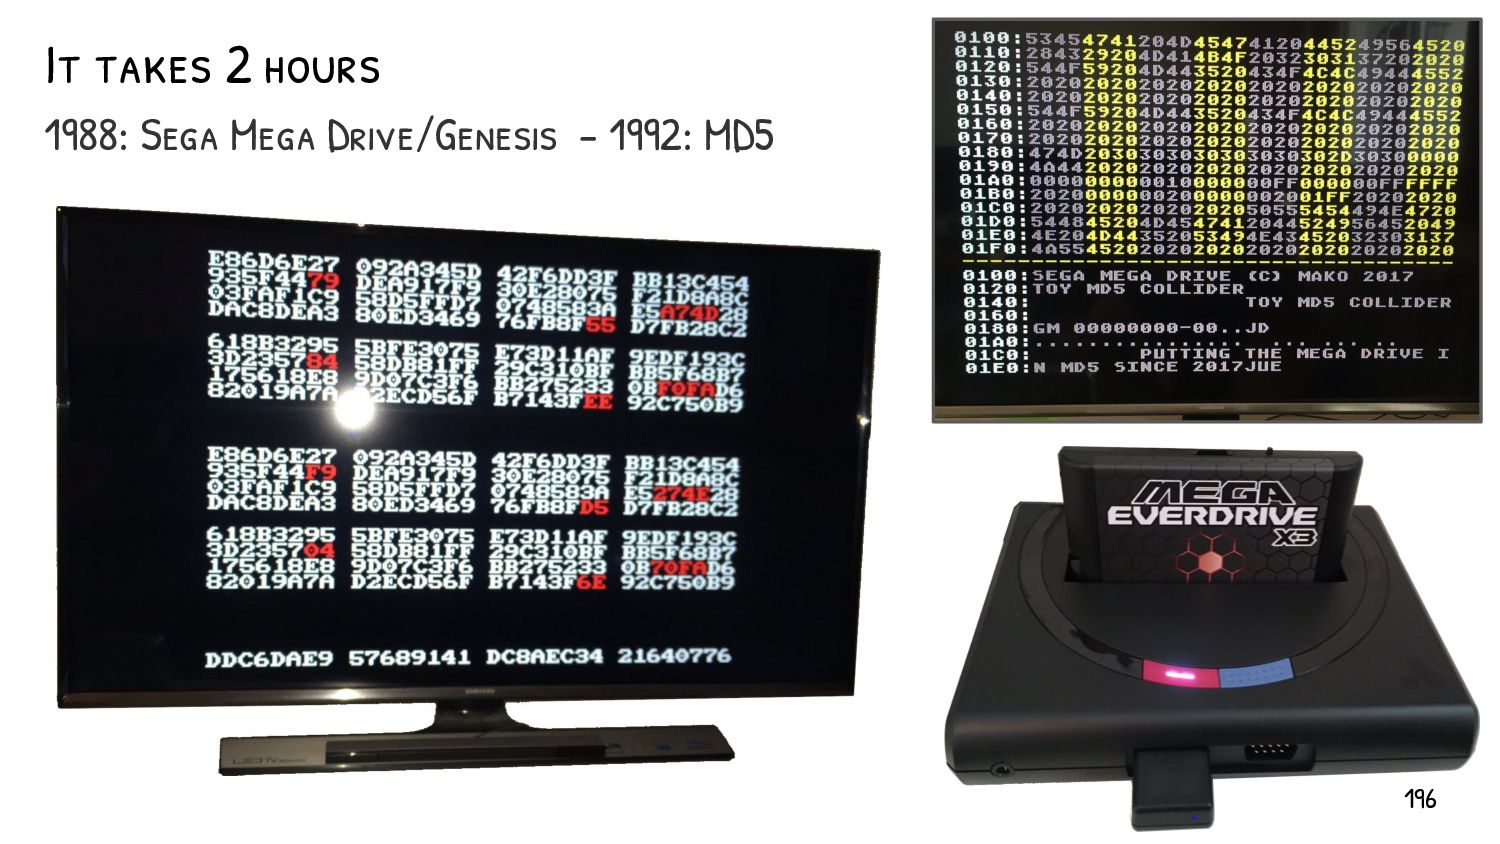 JPG Use a FF FE COMment segments for alignement...